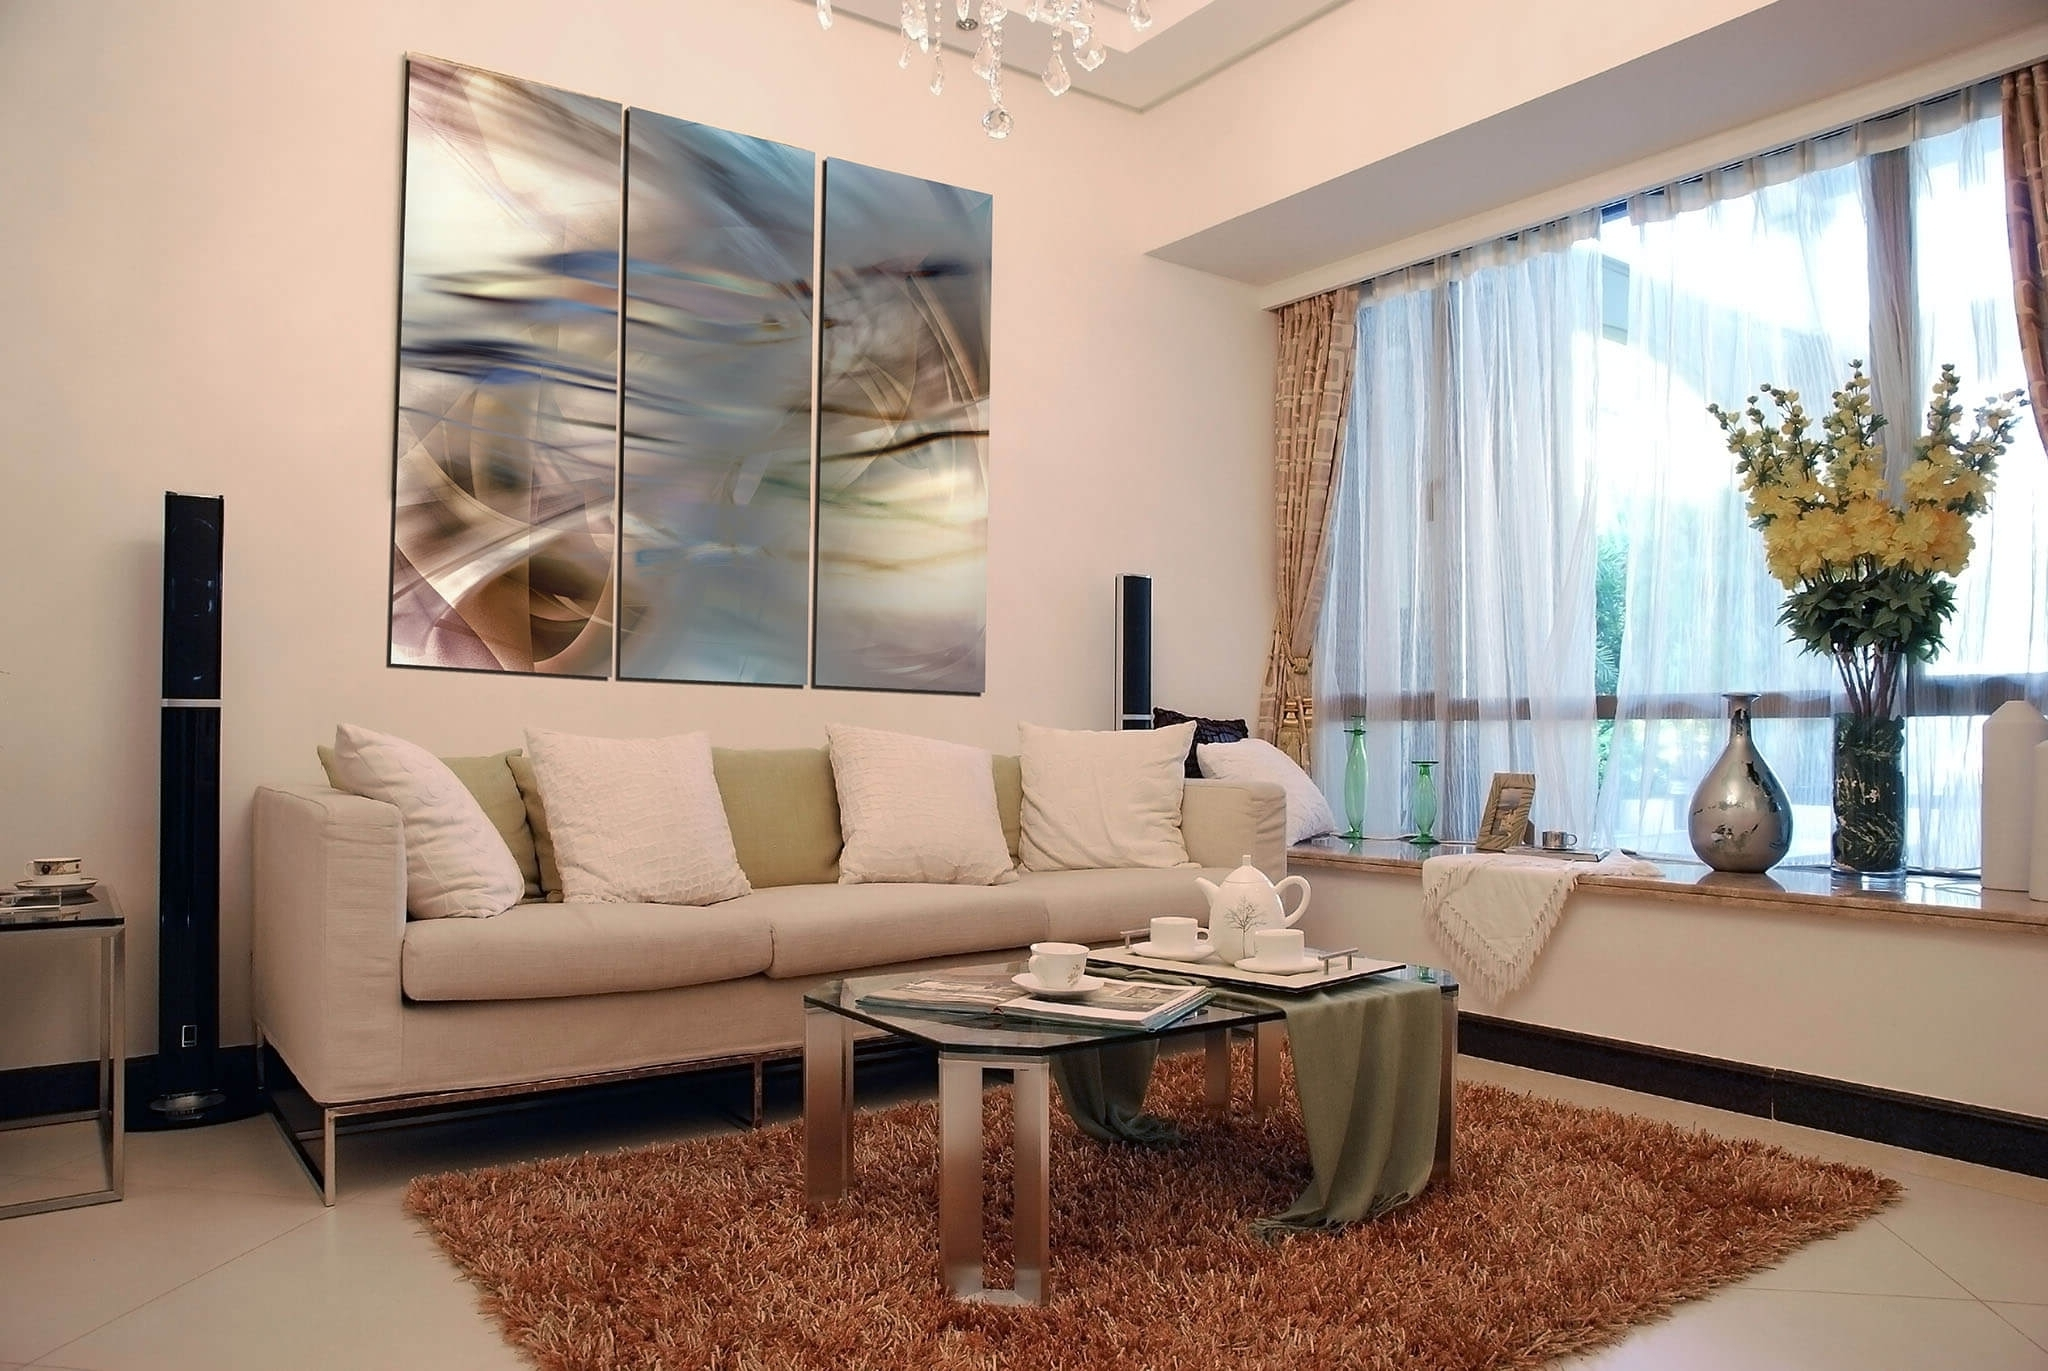 Wall Arts For Living Room Throughout Trendy Wall Art And Decor For Living Room • Walls Decor (View 14 of 15)